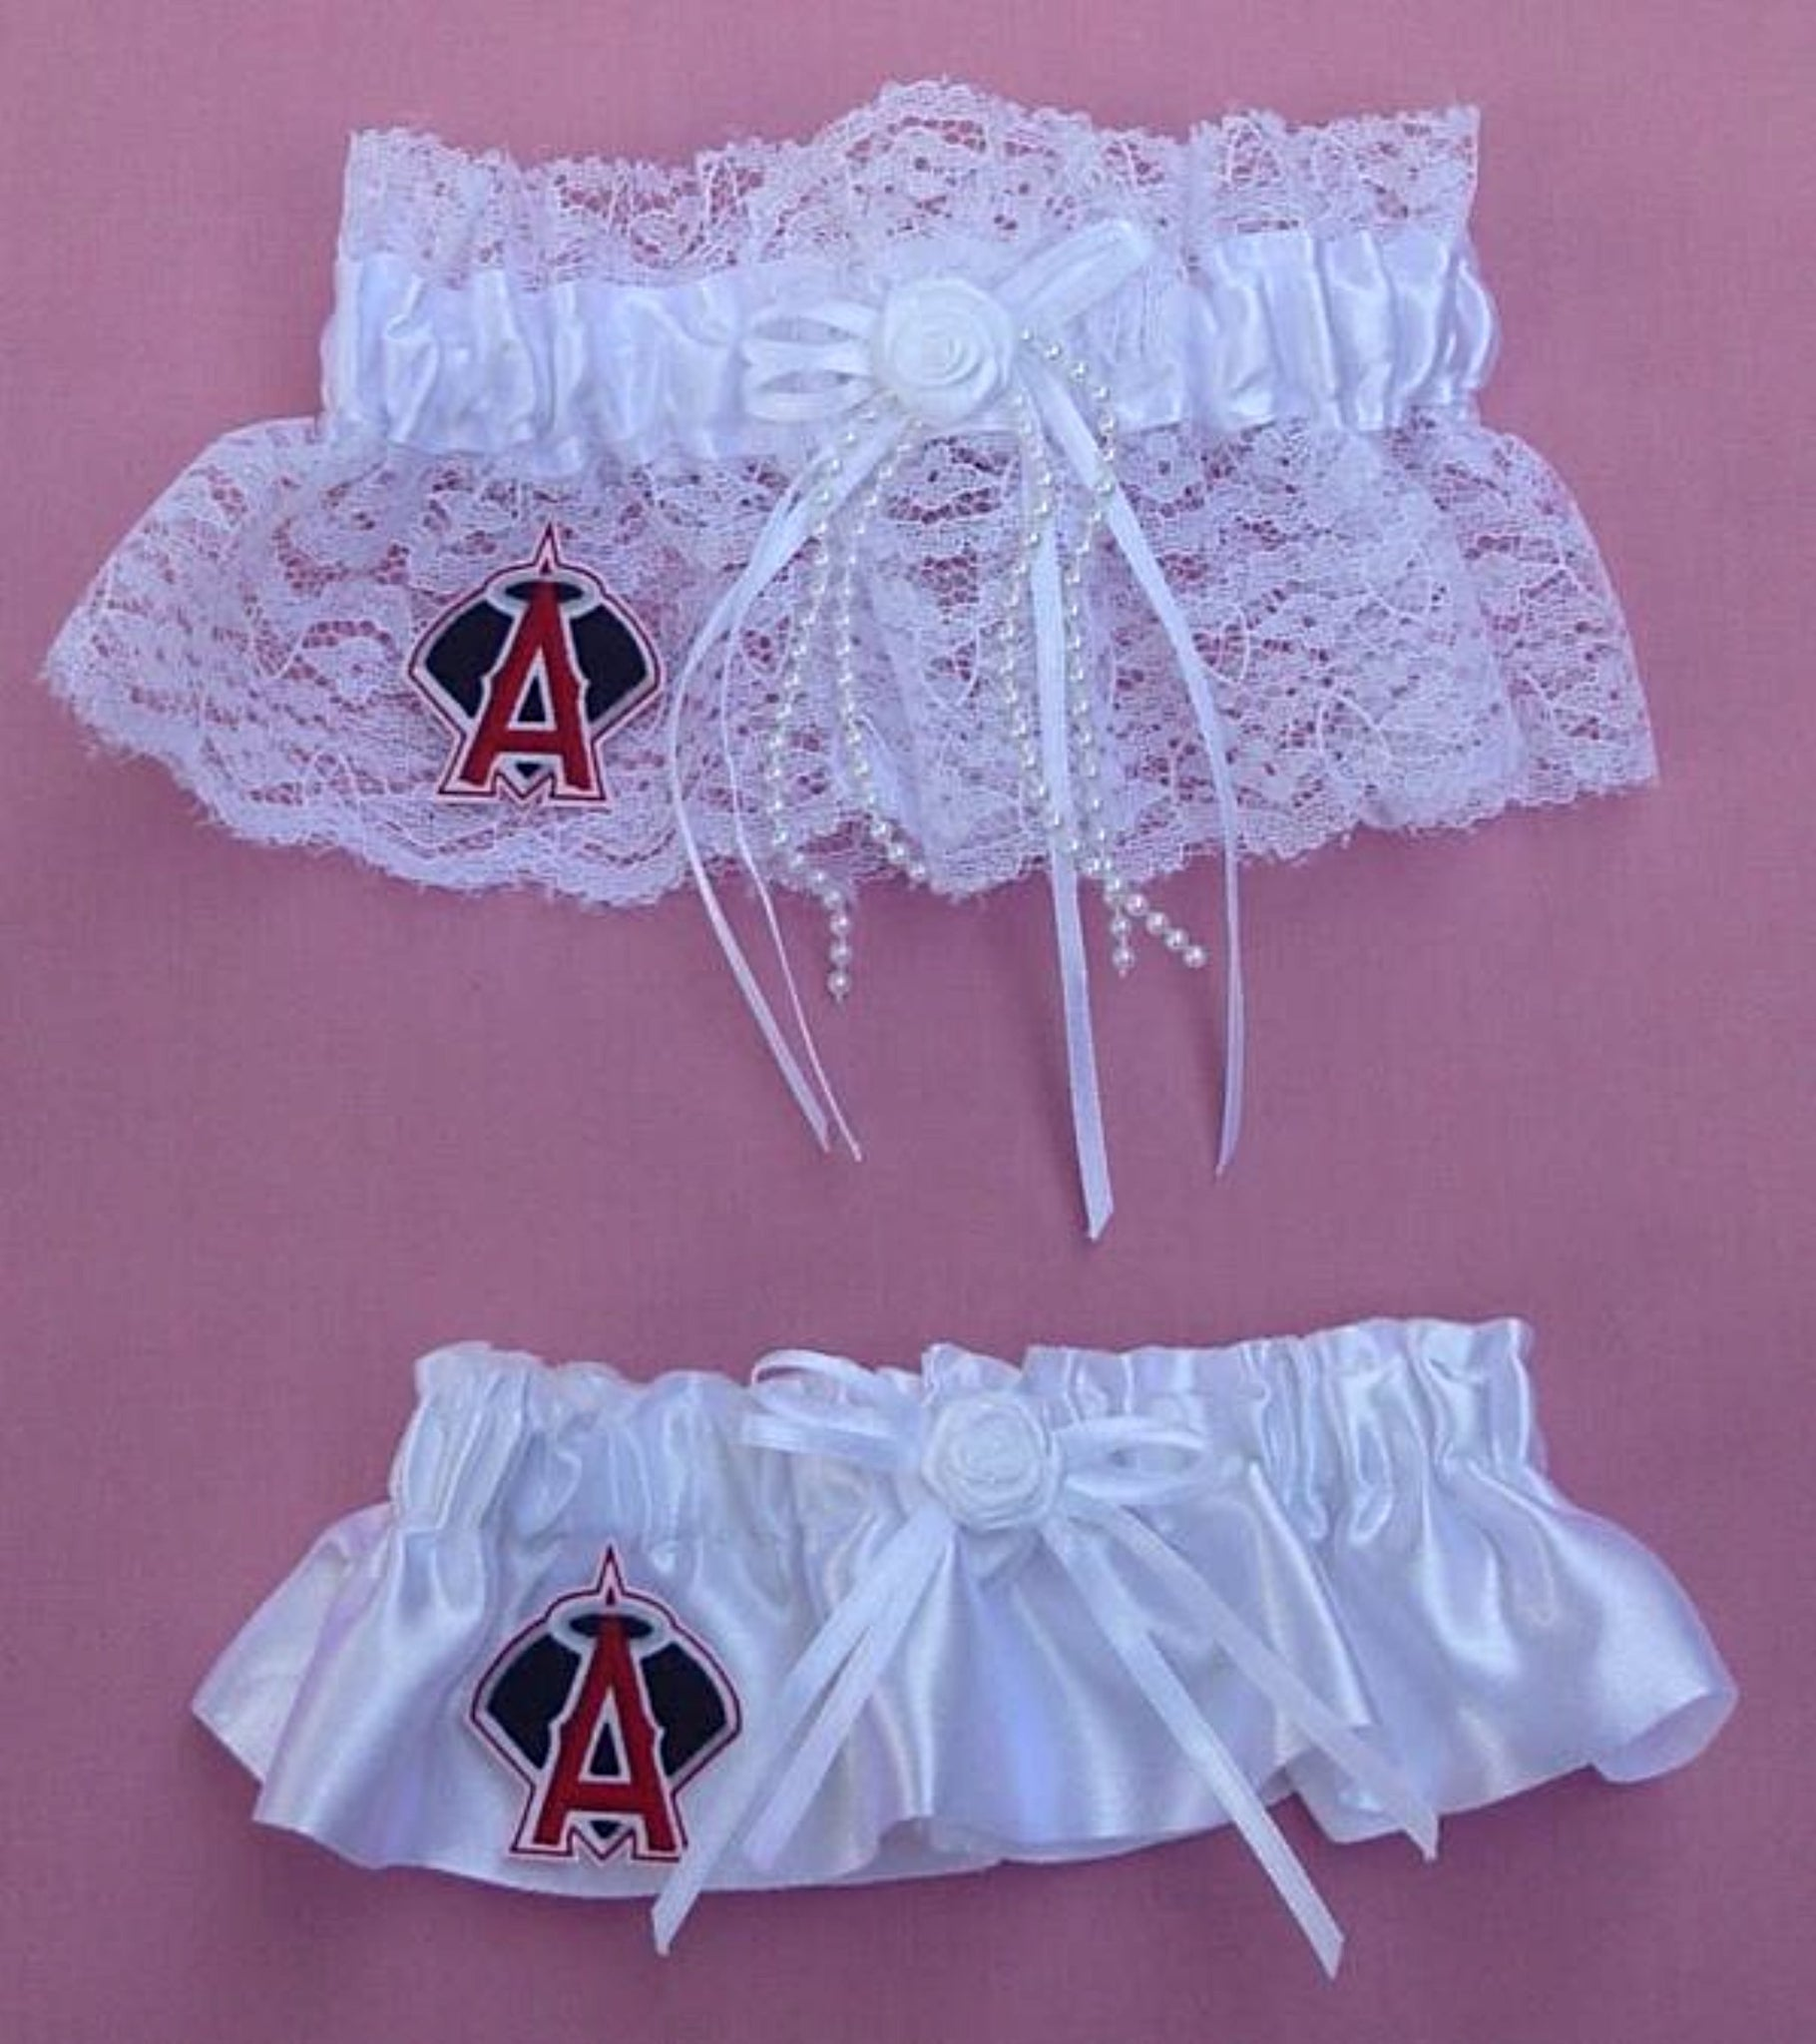 Houston Astros garter bridal set wedding keepsake toss MLB baseball sports fans Fun Wedding Things